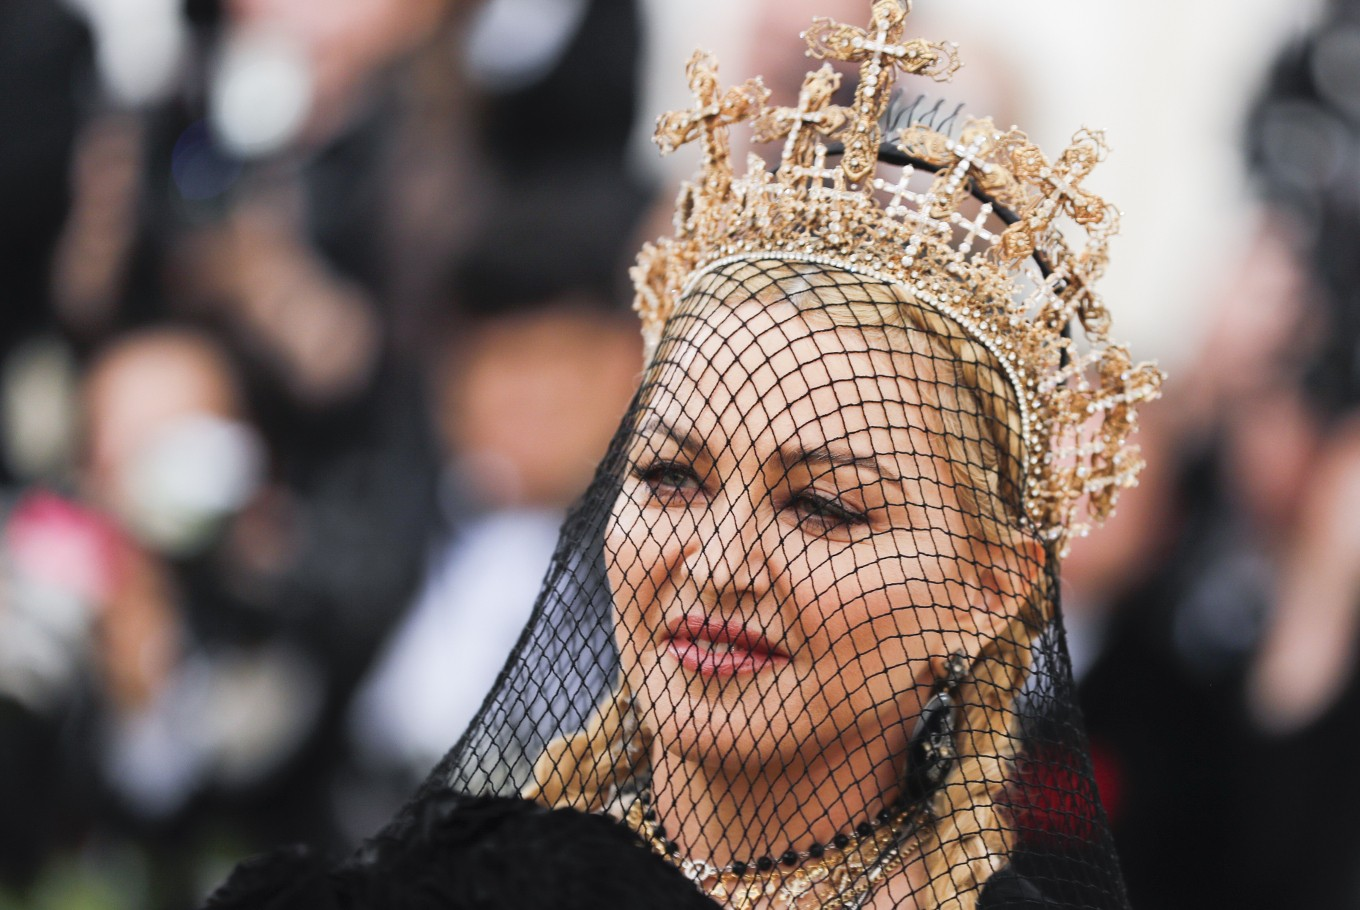 Instagram made to make you feel bad, says Madonna